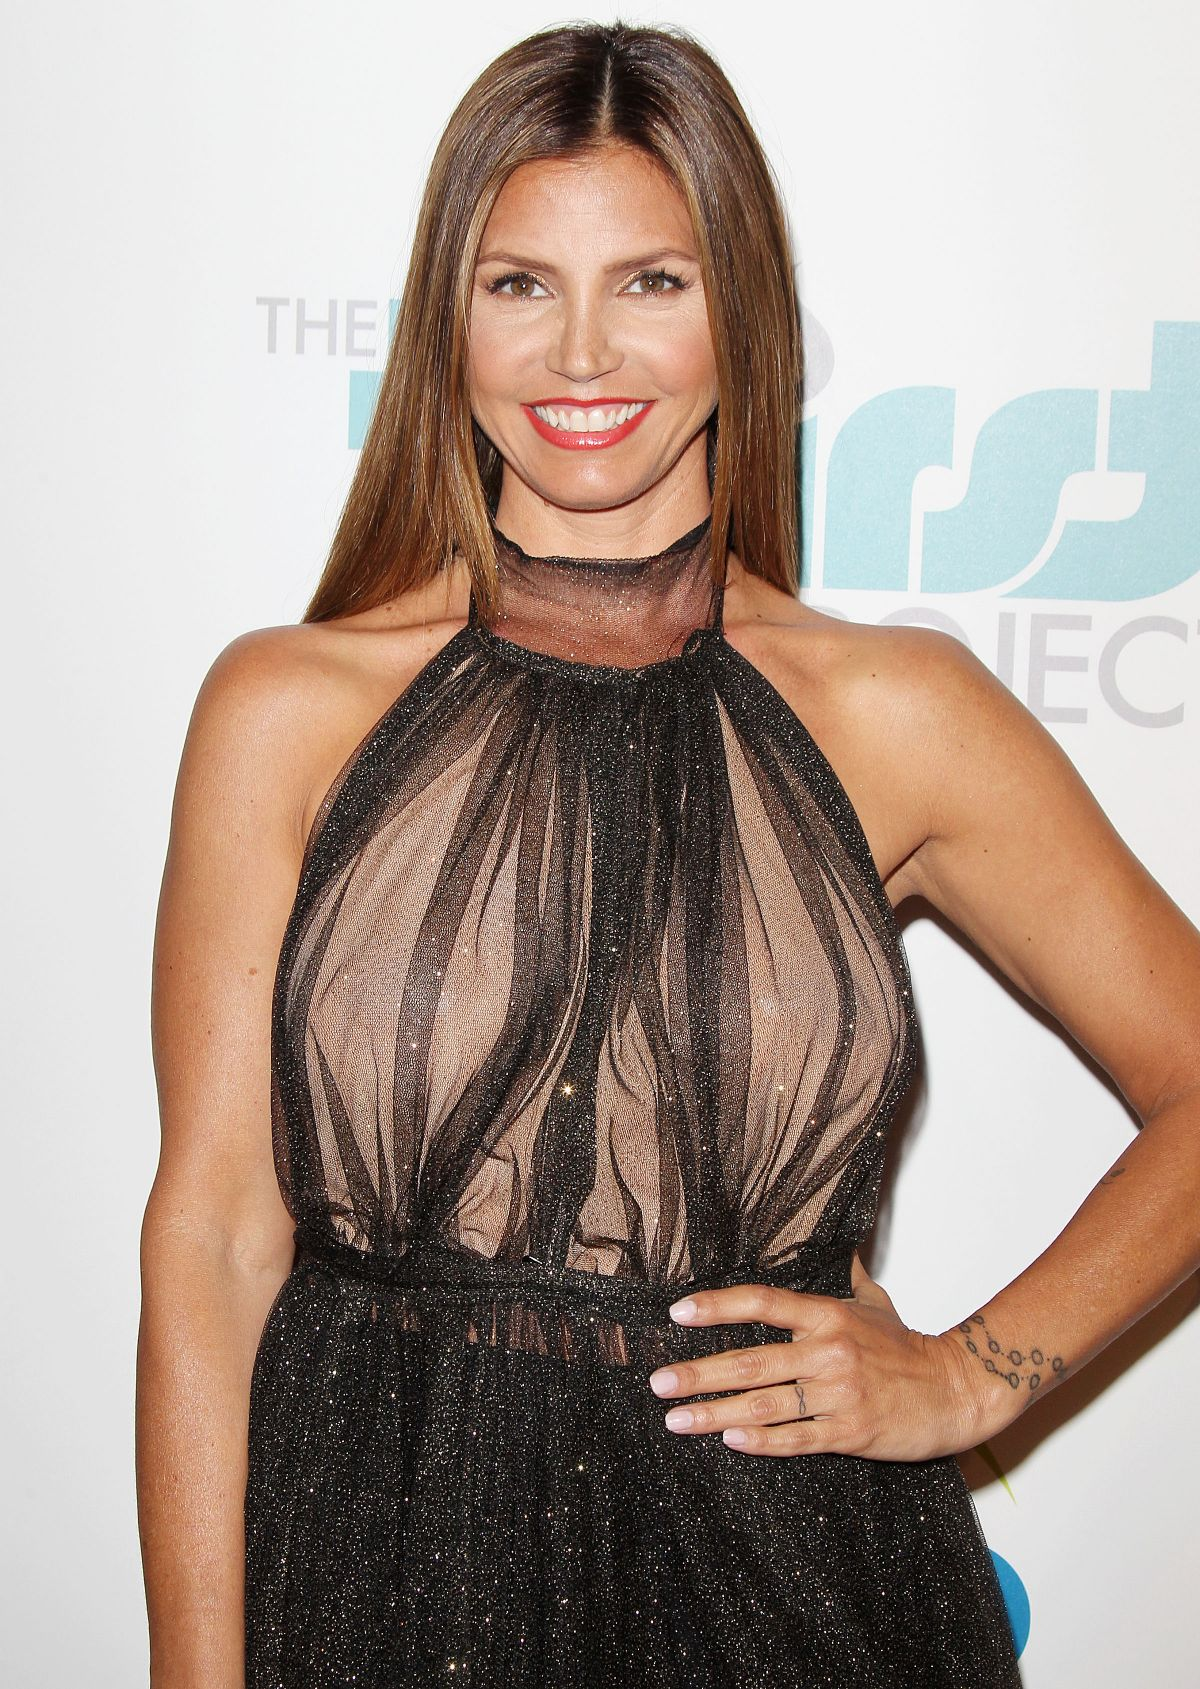 CHARISMA CARPENTER at 2014 Thirst Gala in Los Angeles